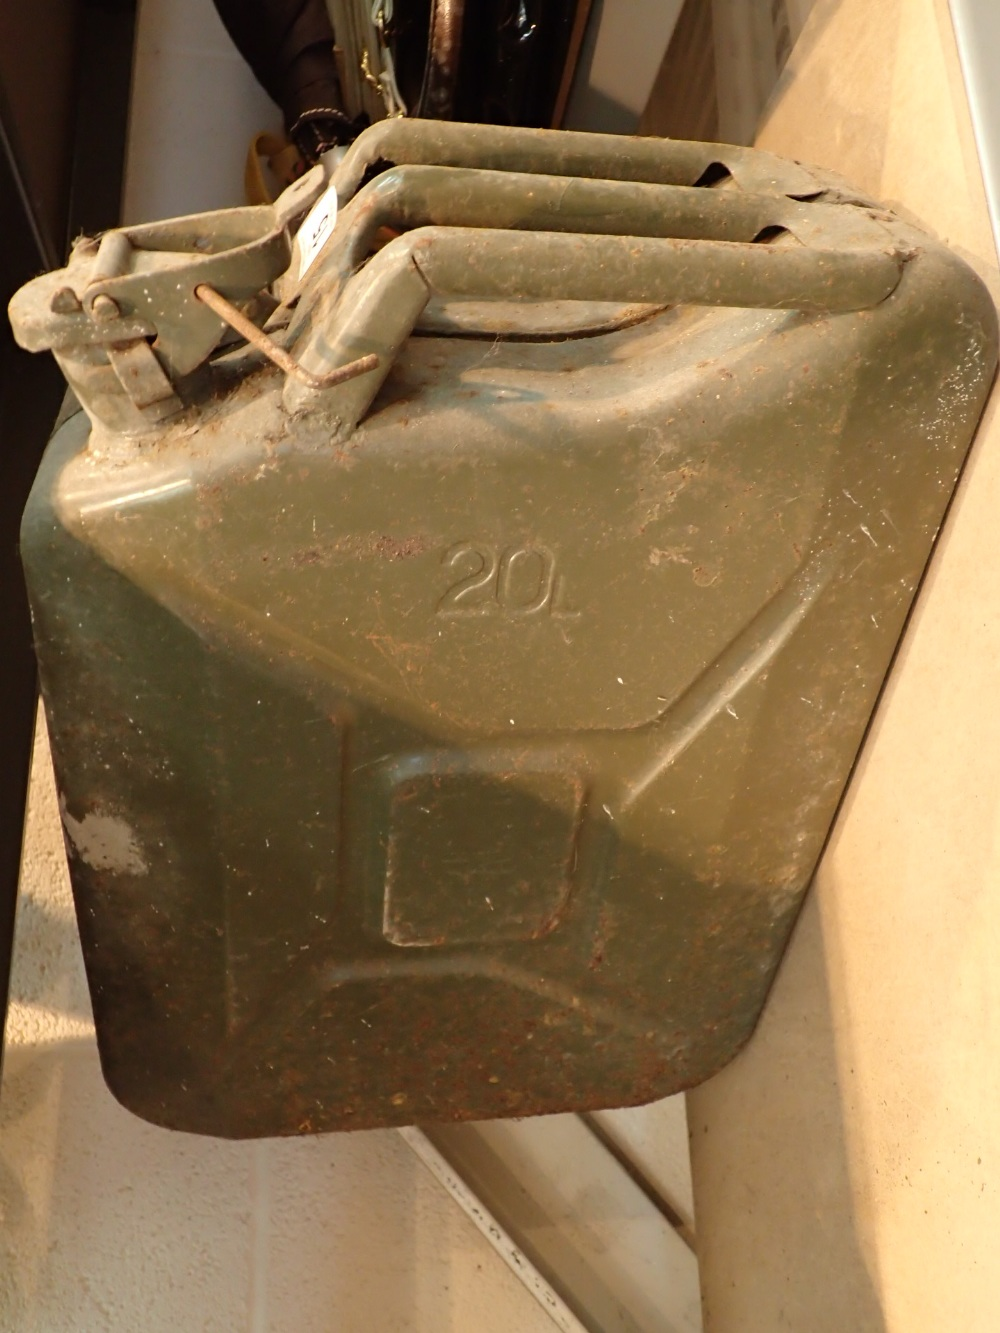 Lot 15 - 20L jerry can